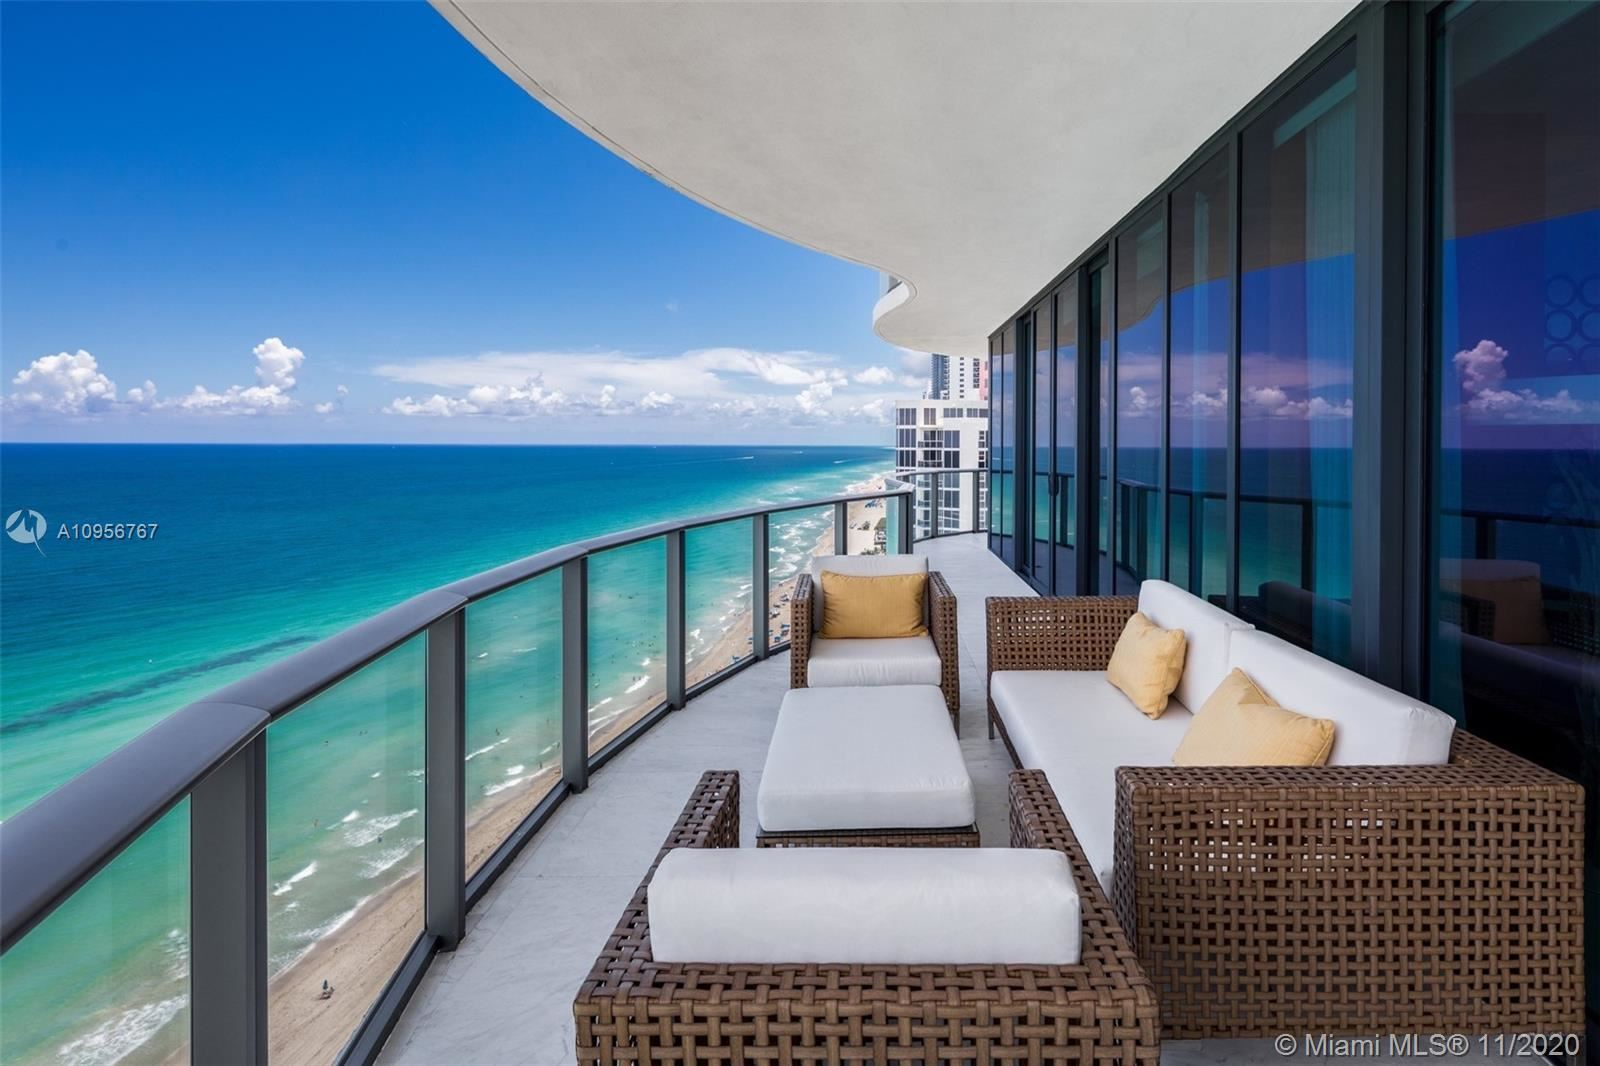 19575 Collins Ave #21, Sunny Isles, FL 33160 - #: A10956767